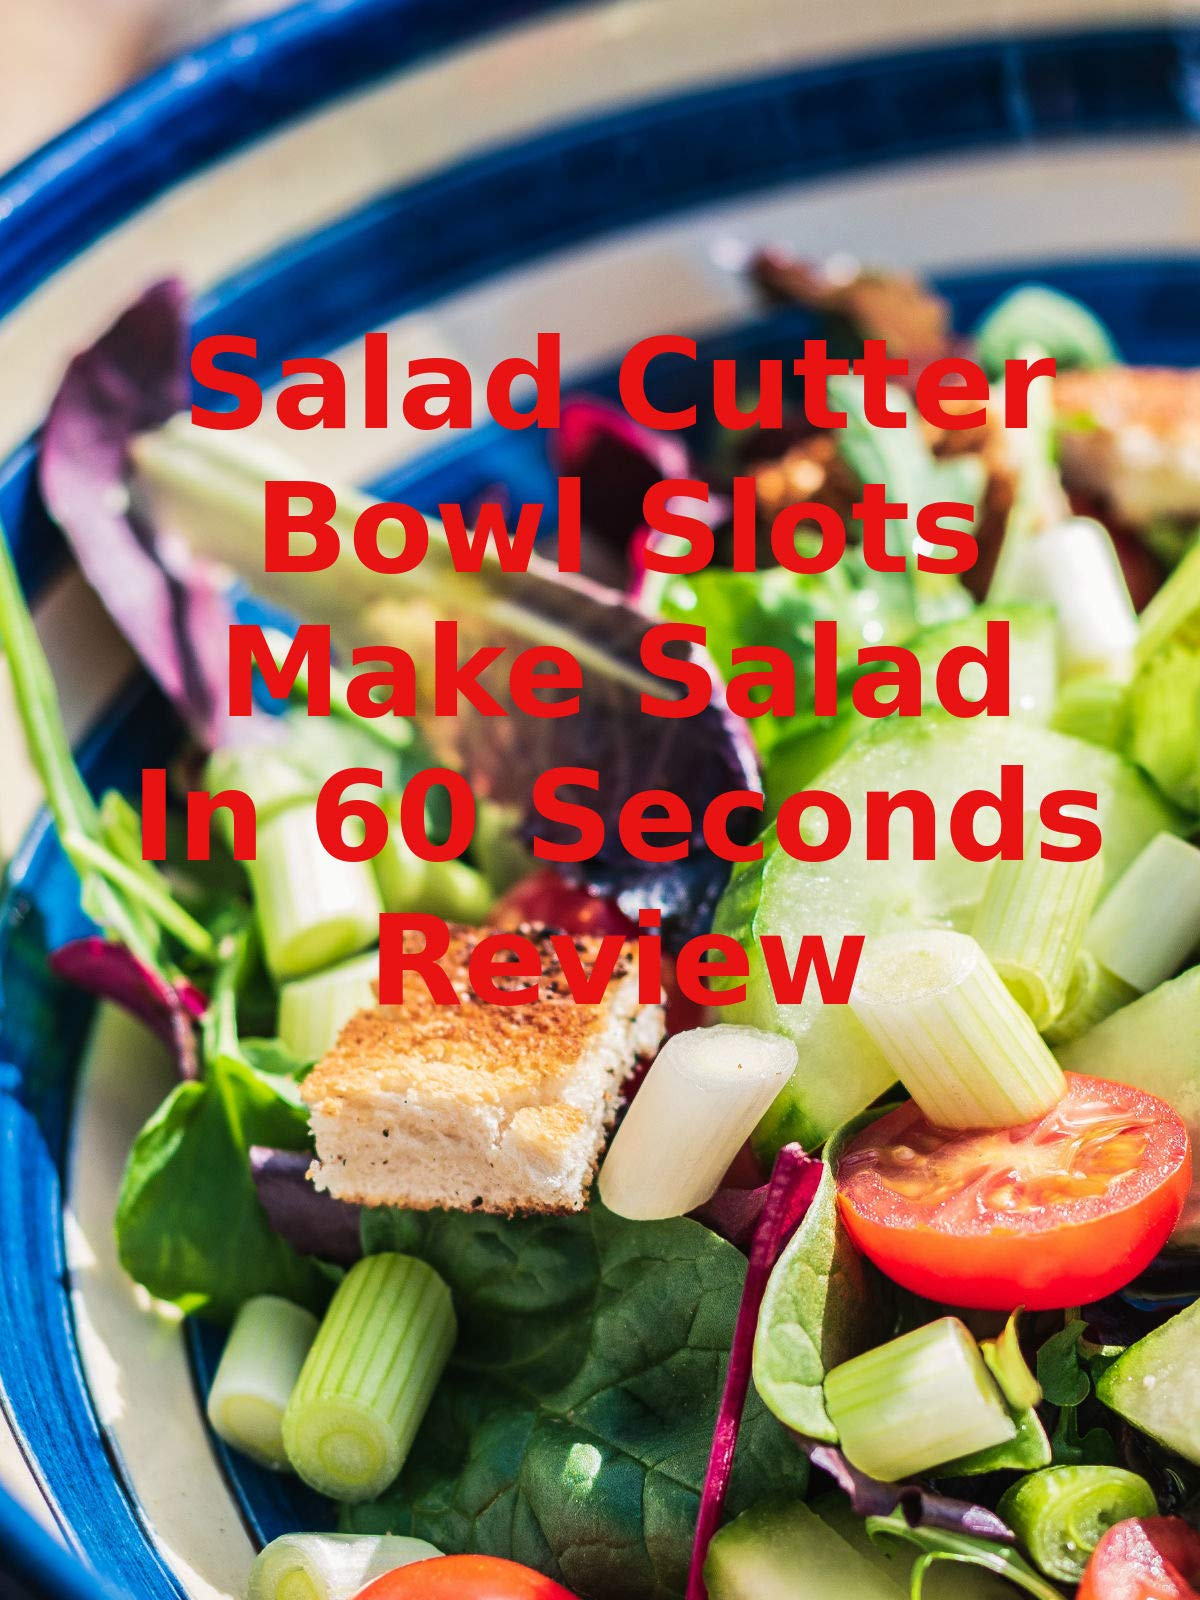 Review: Salad Cutter Bowl Slots Make Salad In 60 Seconds Review on Amazon Prime Video UK